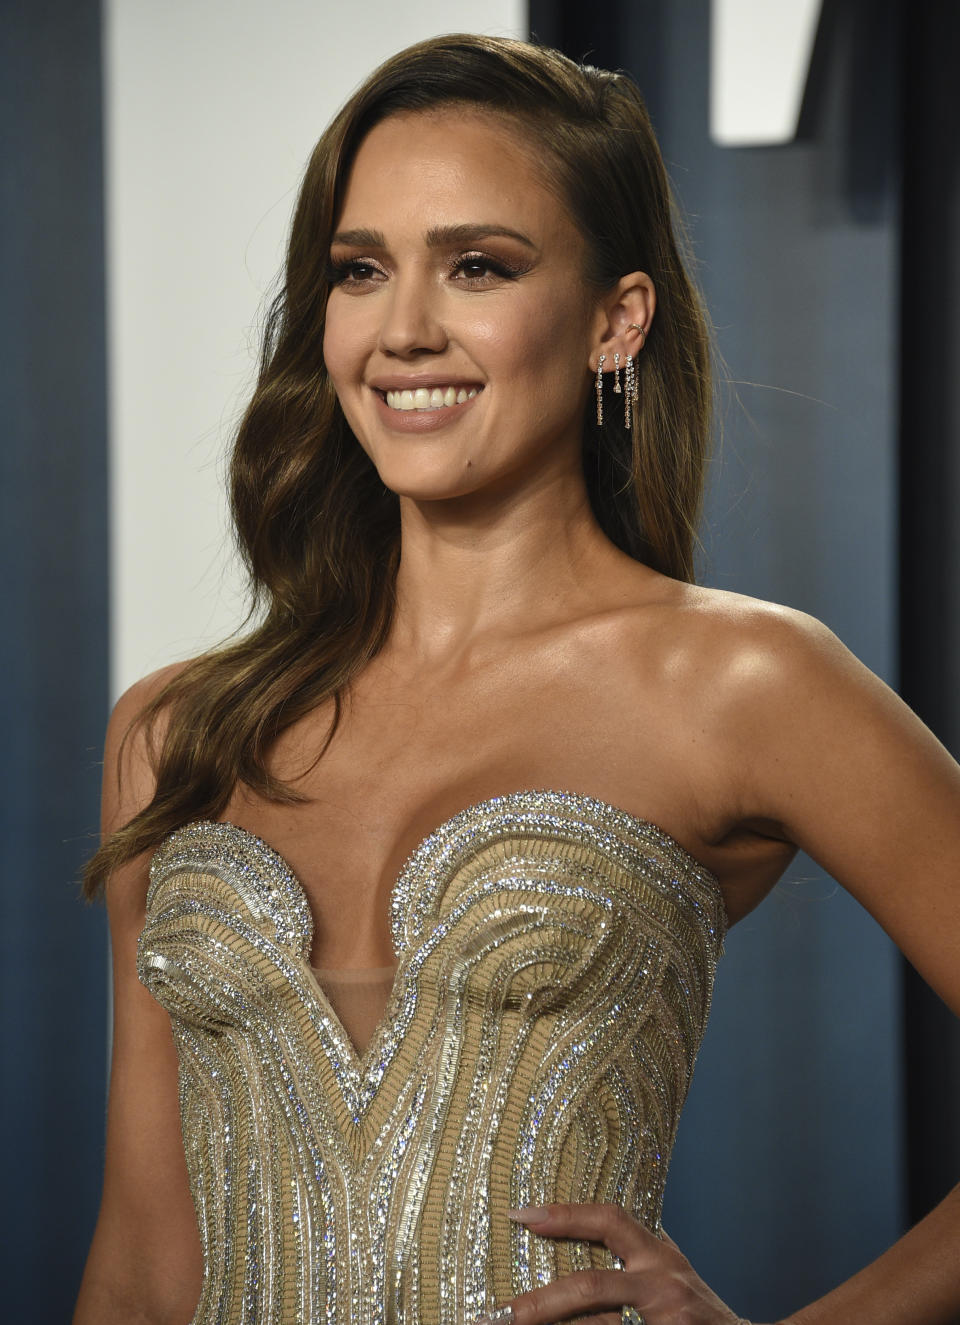 Jessica Alba arrives at the Vanity Fair Oscar Party on Sunday, Feb. 9, 2020, in Beverly Hills, Calif. (Photo by Evan Agostini/Invision/AP)